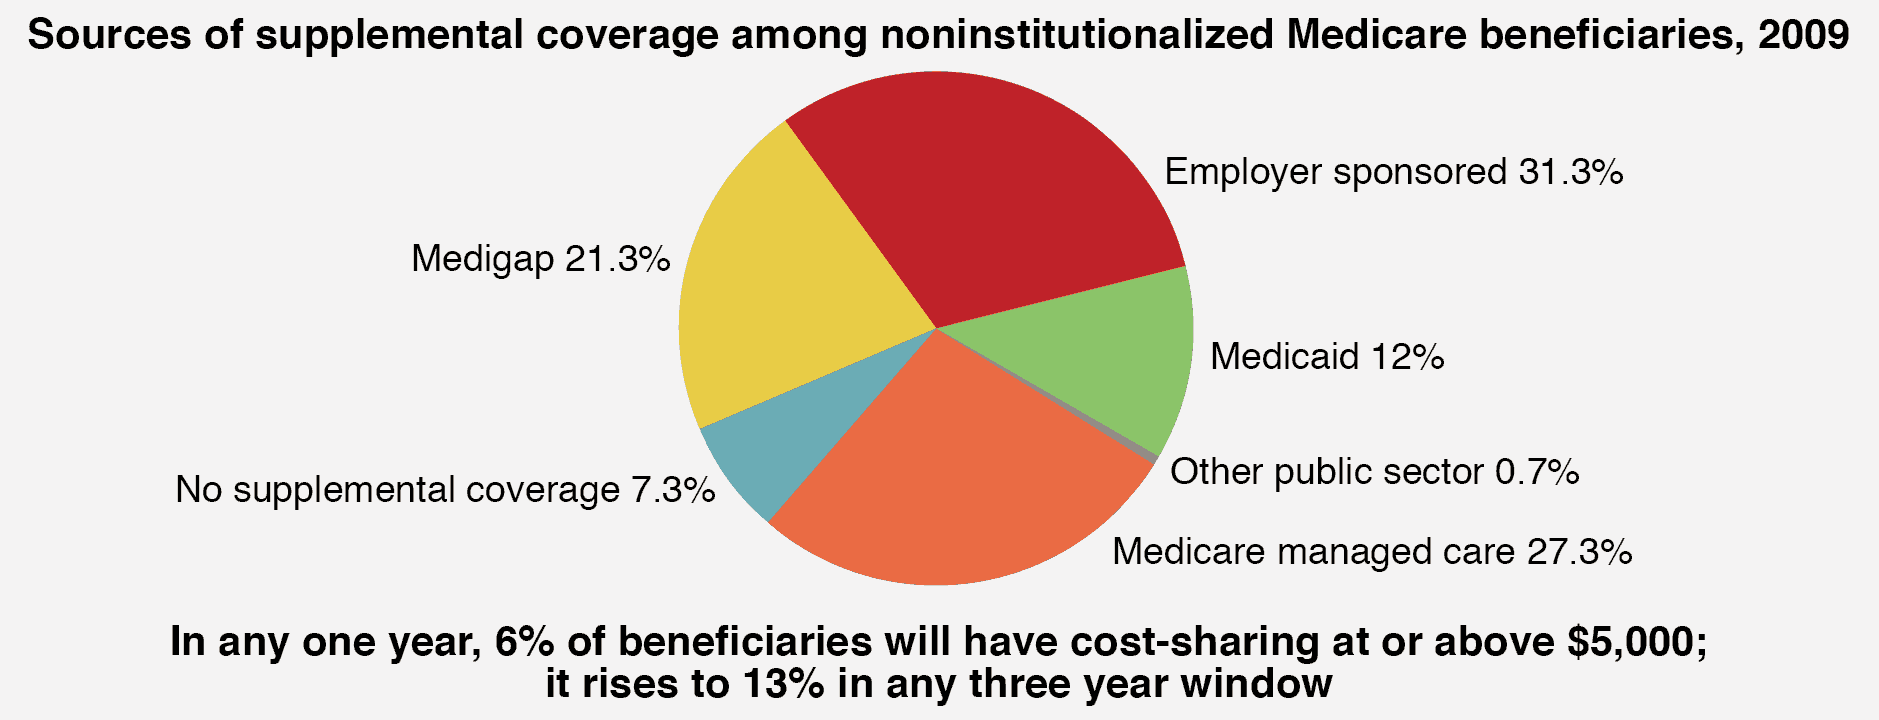 Medicare sources of supplemental coverage